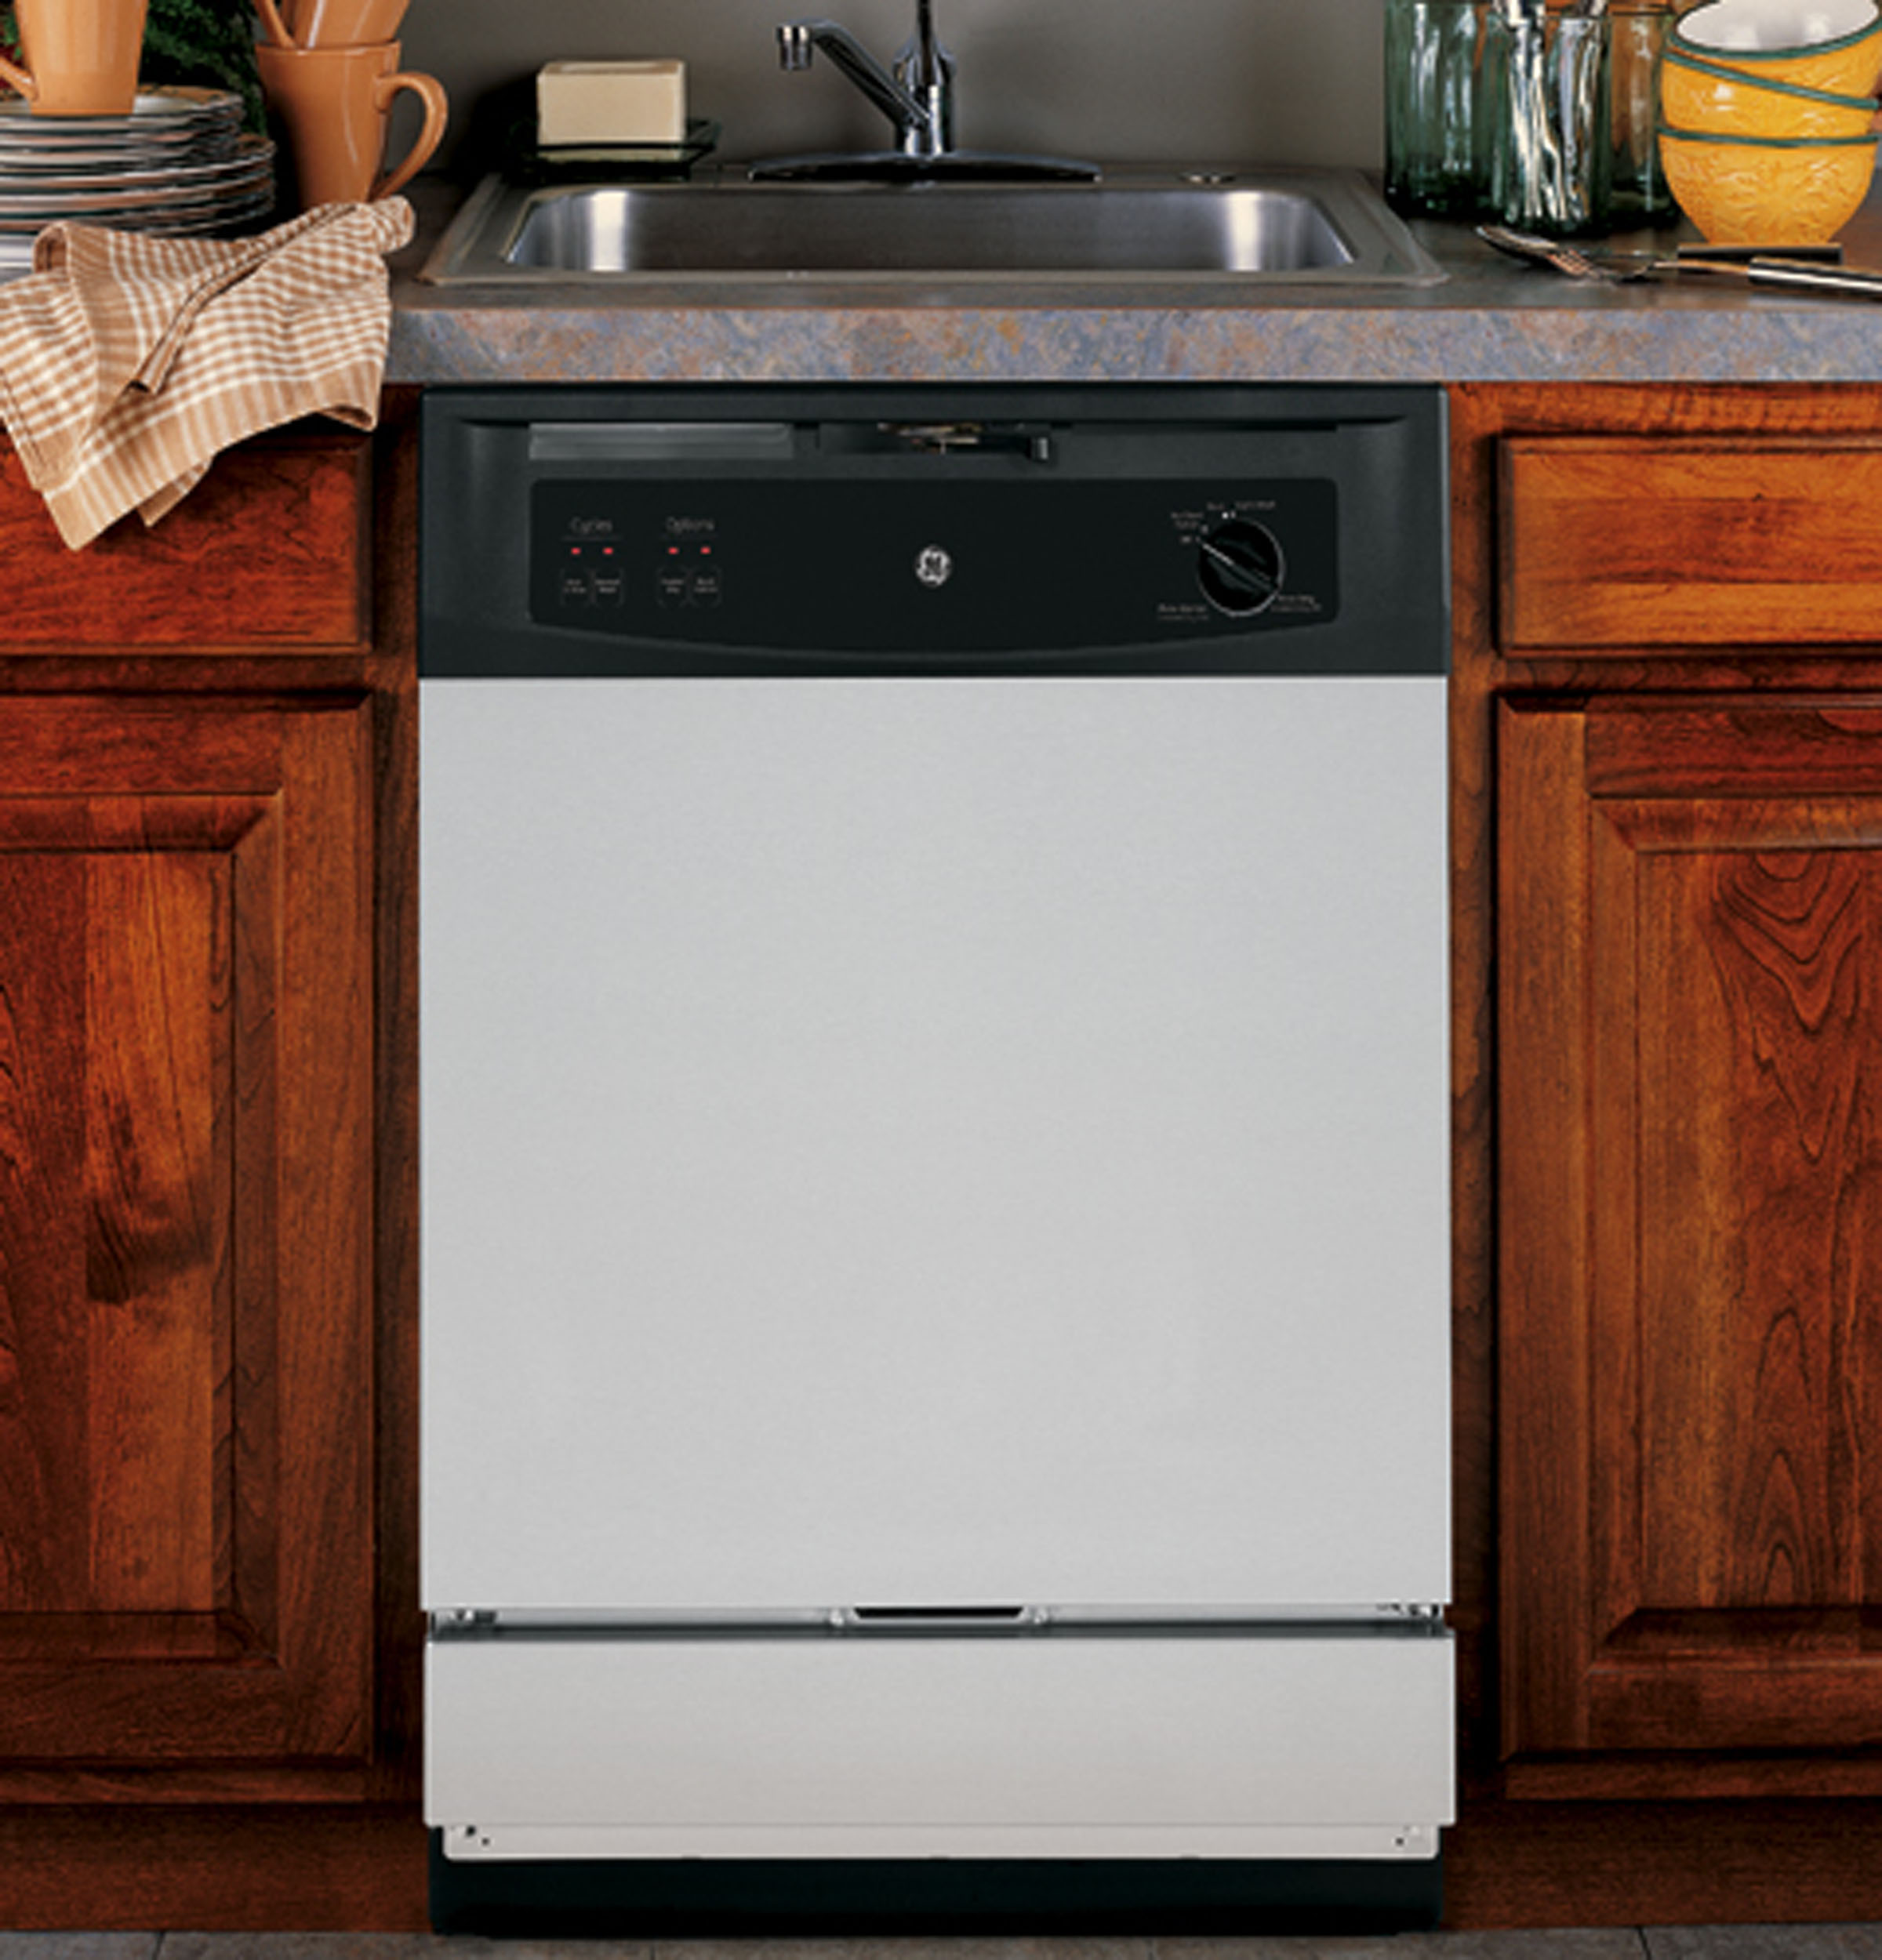 wall monogram convection monogrammonogram electronic electric ge oven door frjbhoufdncq drawer dishwasher professional french cooking ovens single